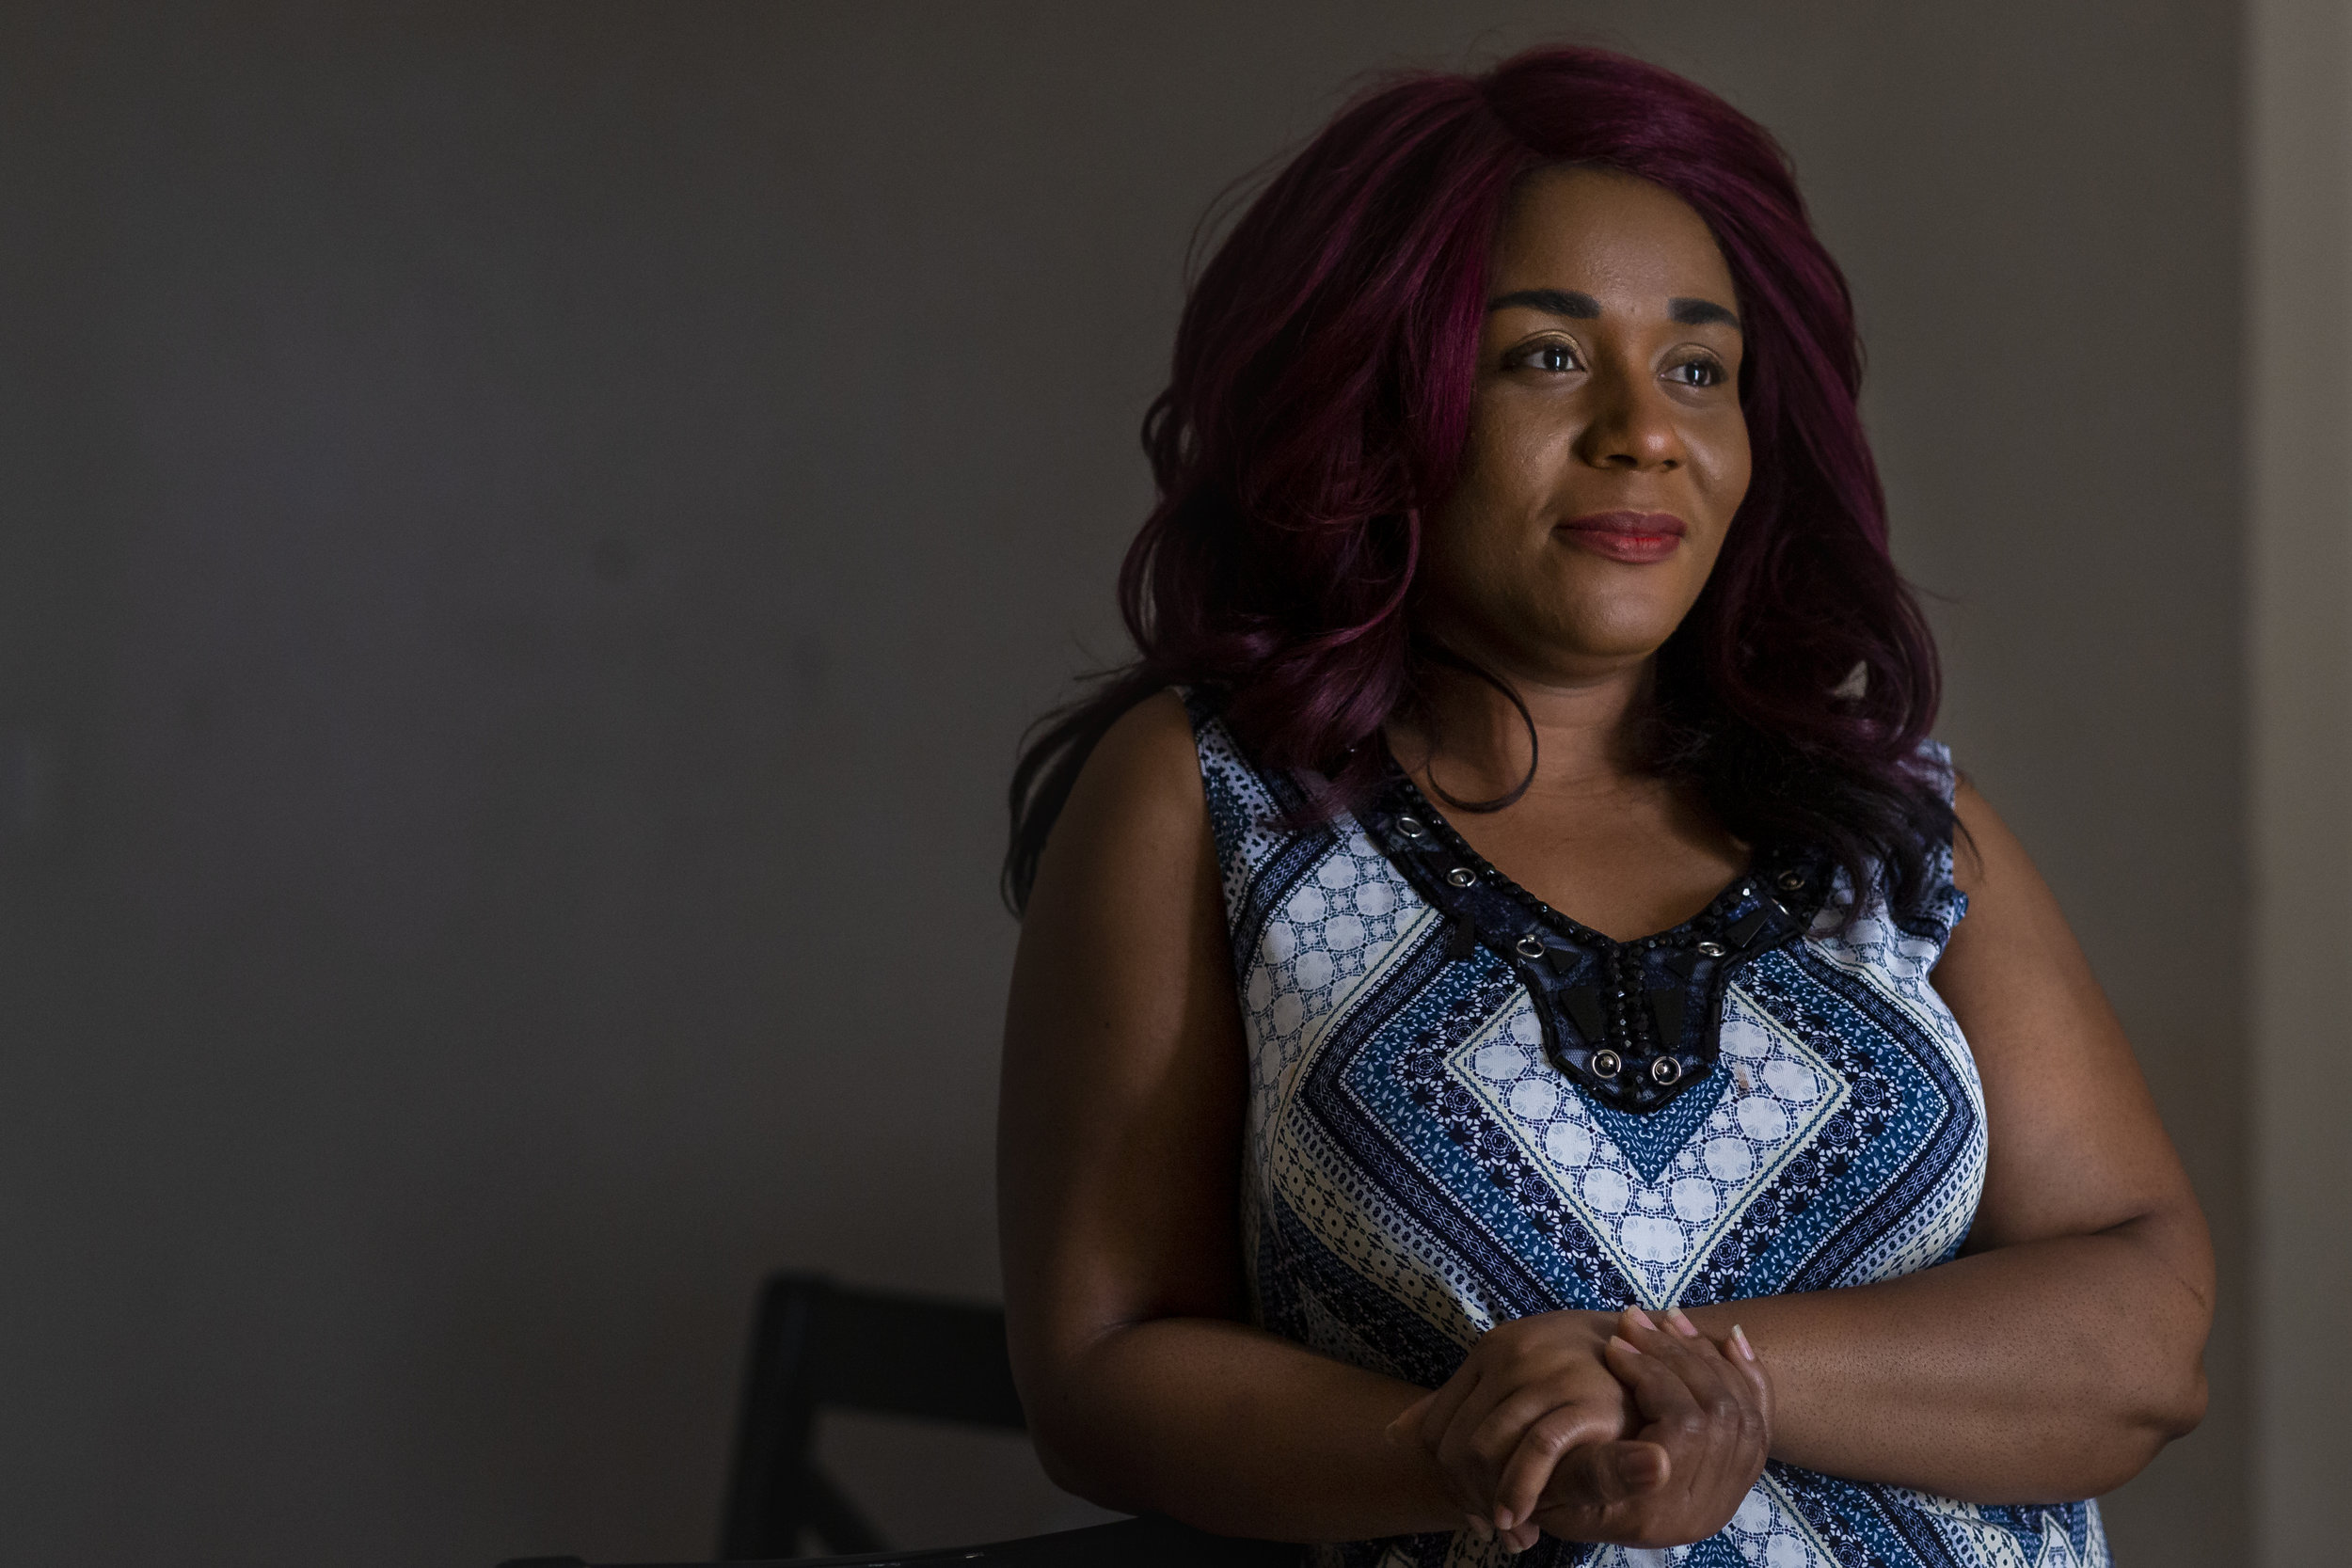 Antonese Dorsin, 37, at her home in Little Havana, Florida on Thursday, May 9, 2019. Dorsin, a mother of six, became homeless after losing her job seven years ago. Now, she has a job and is living in an affordable housing building with her family.